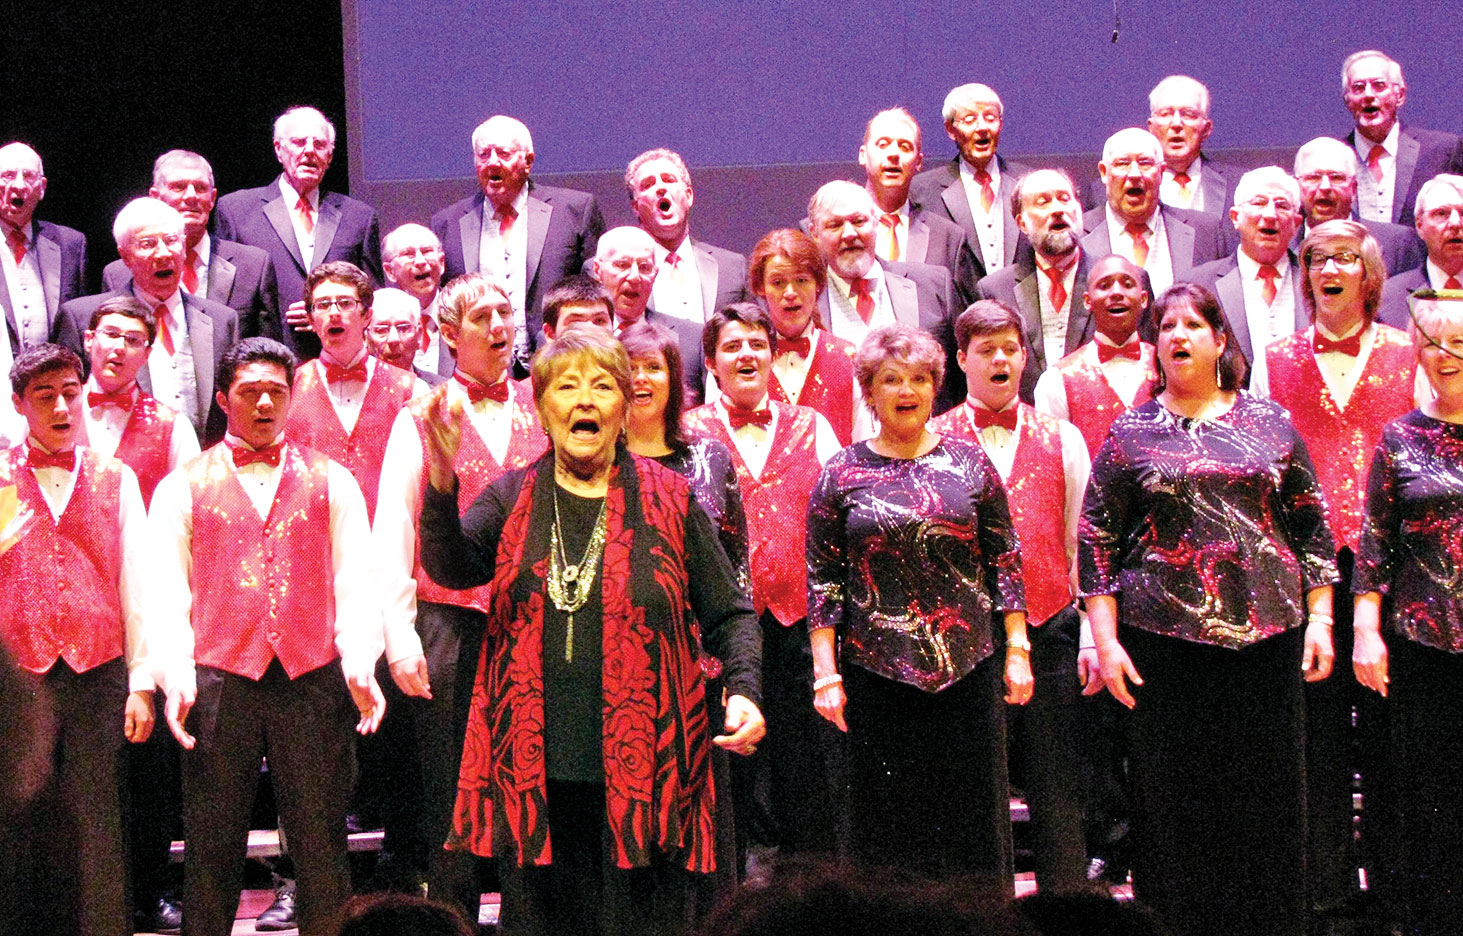 Berlin Goes Barbershop finale – combined ensemble singing his great anthem God Bless America. Photo by Suzanne Bott.